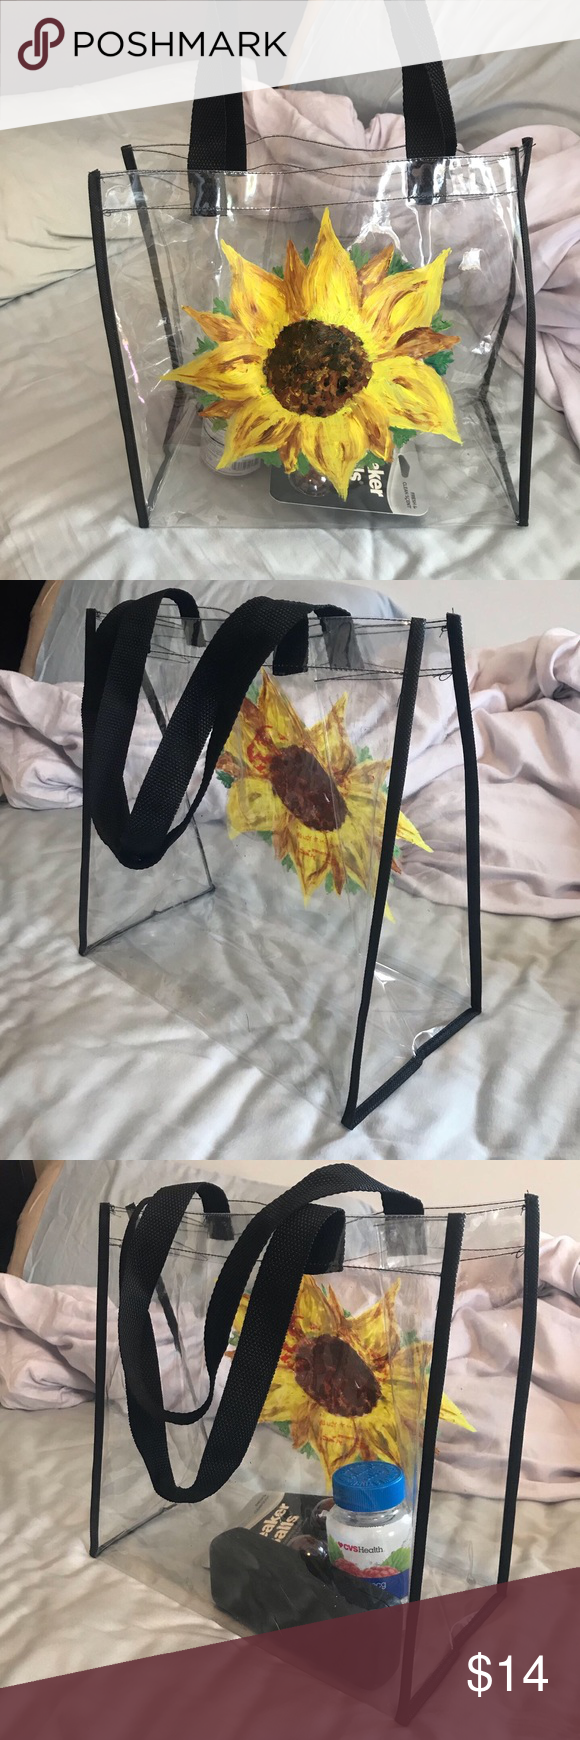 Sunflower art tote Clear plastic flower bag. Stadium